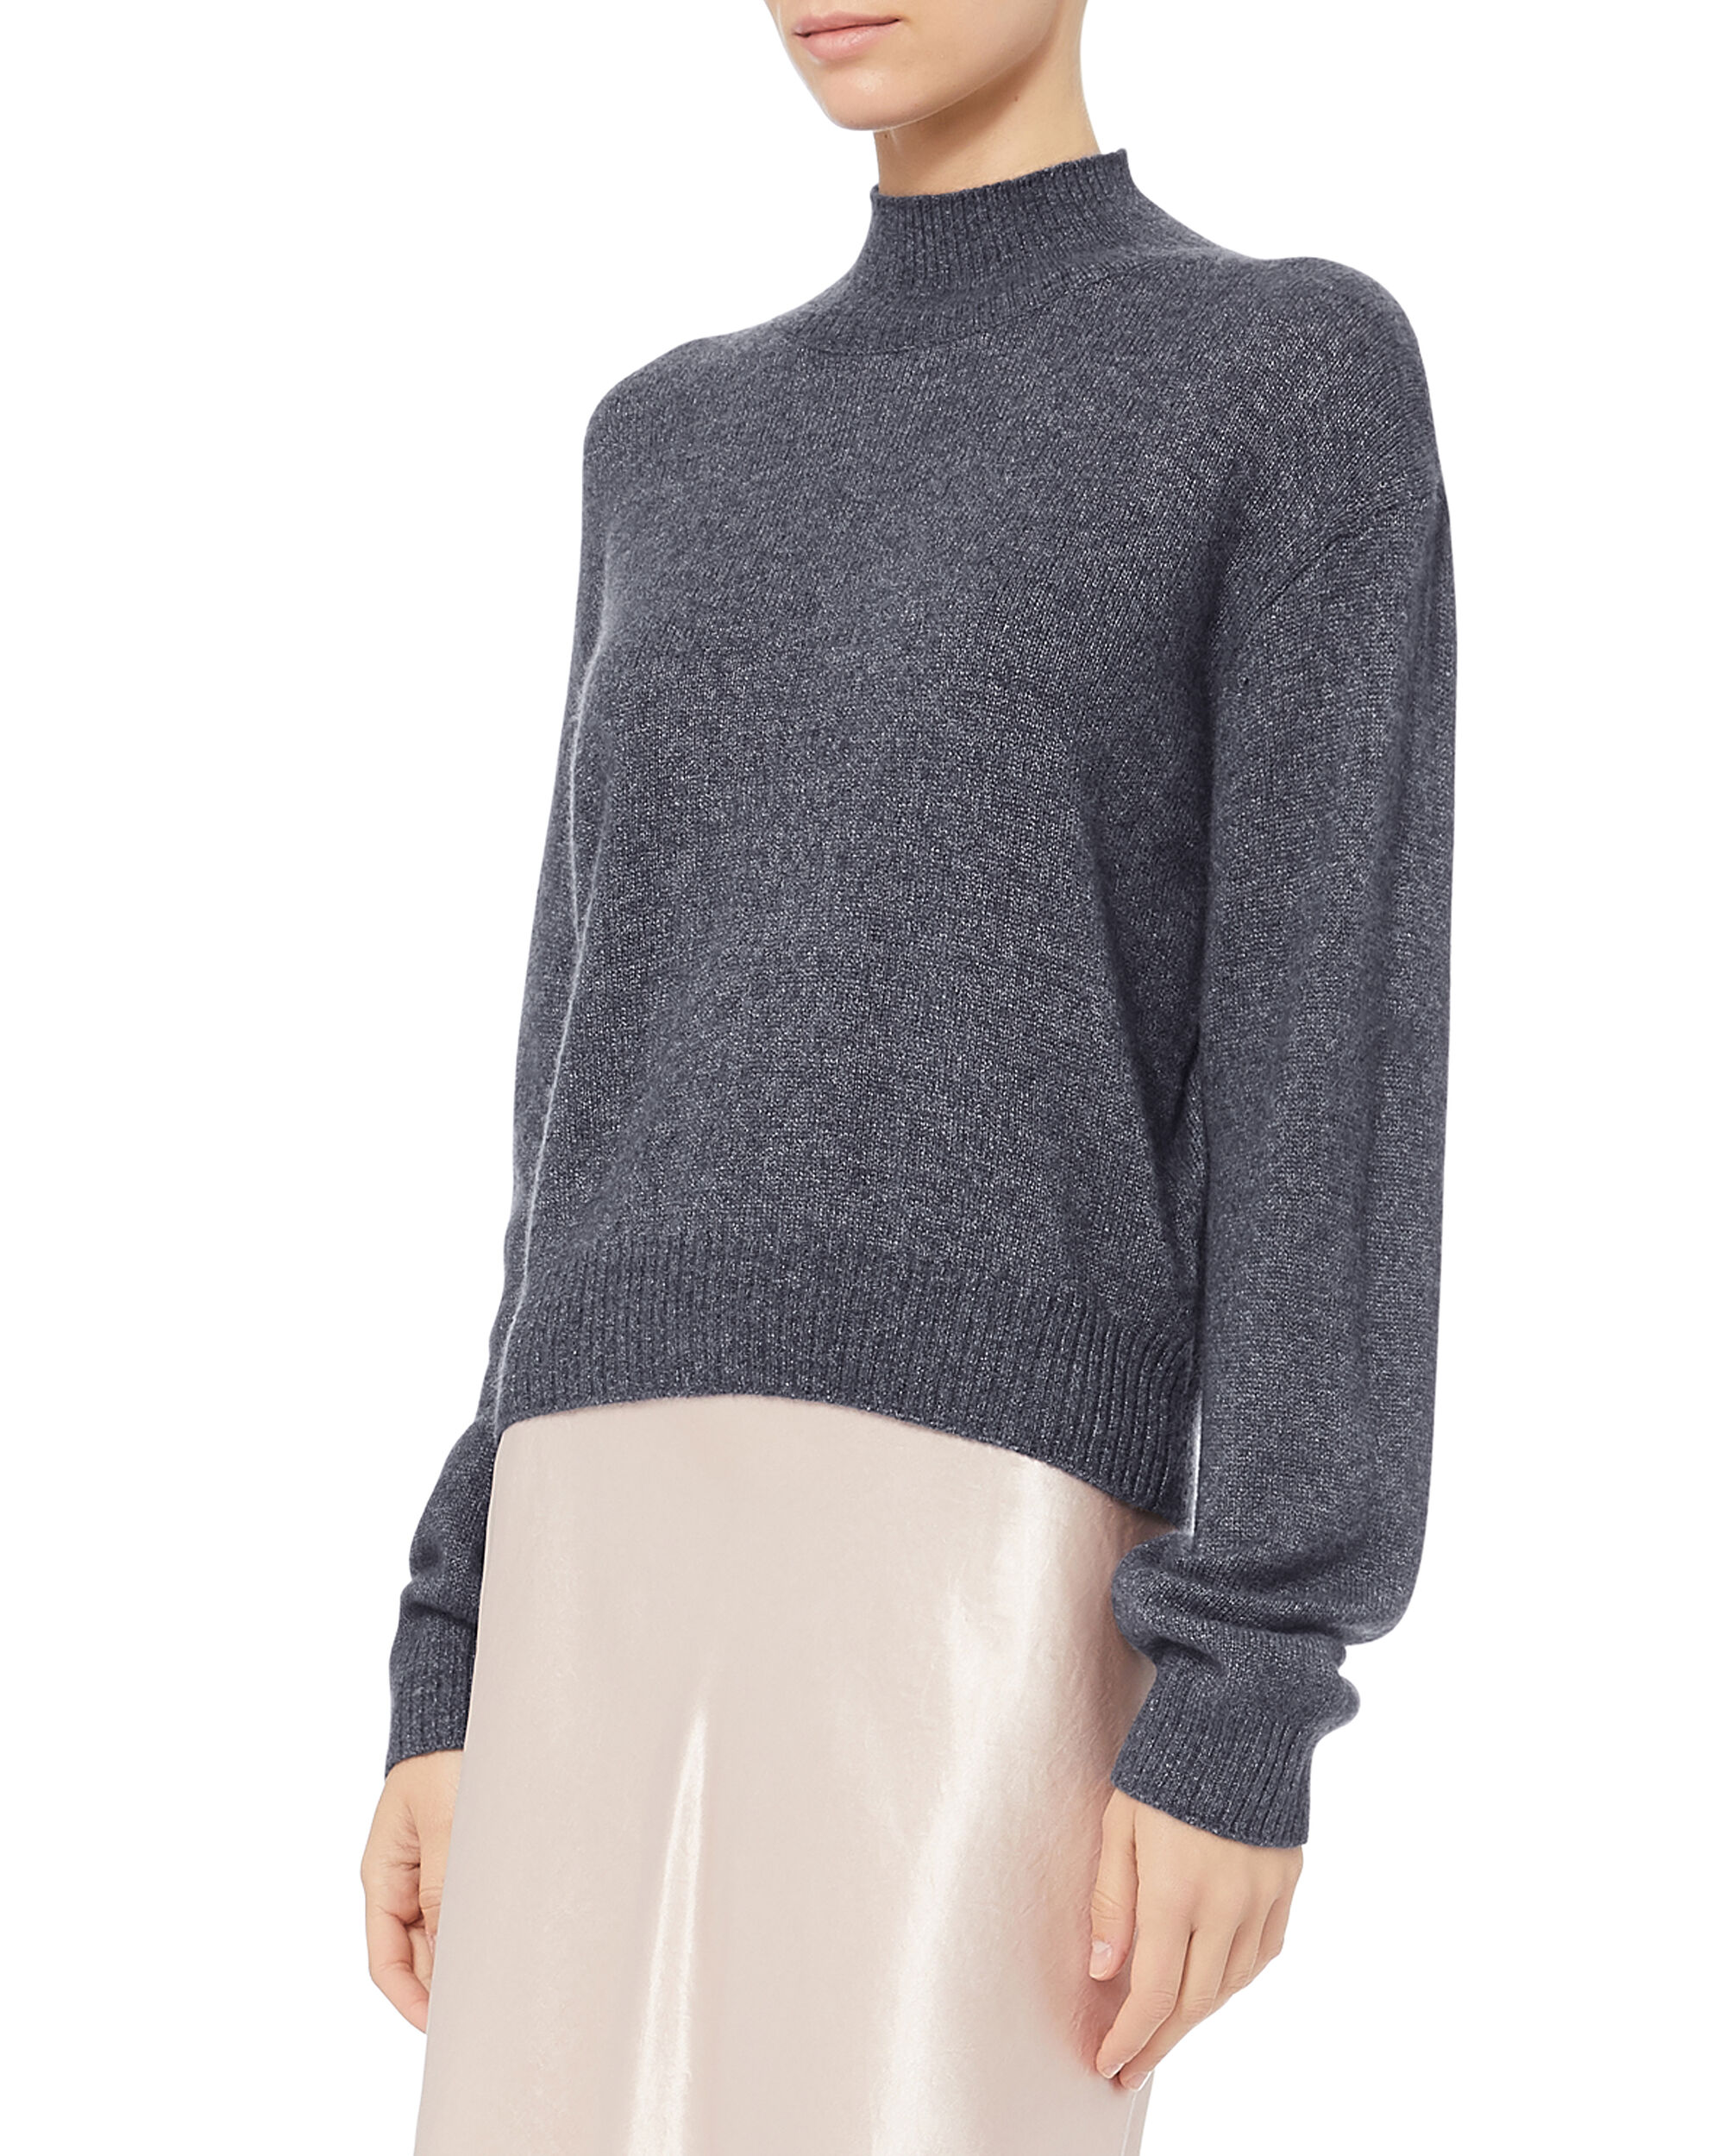 Brushed Cashmere Grey Sweater, GREY, hi-res